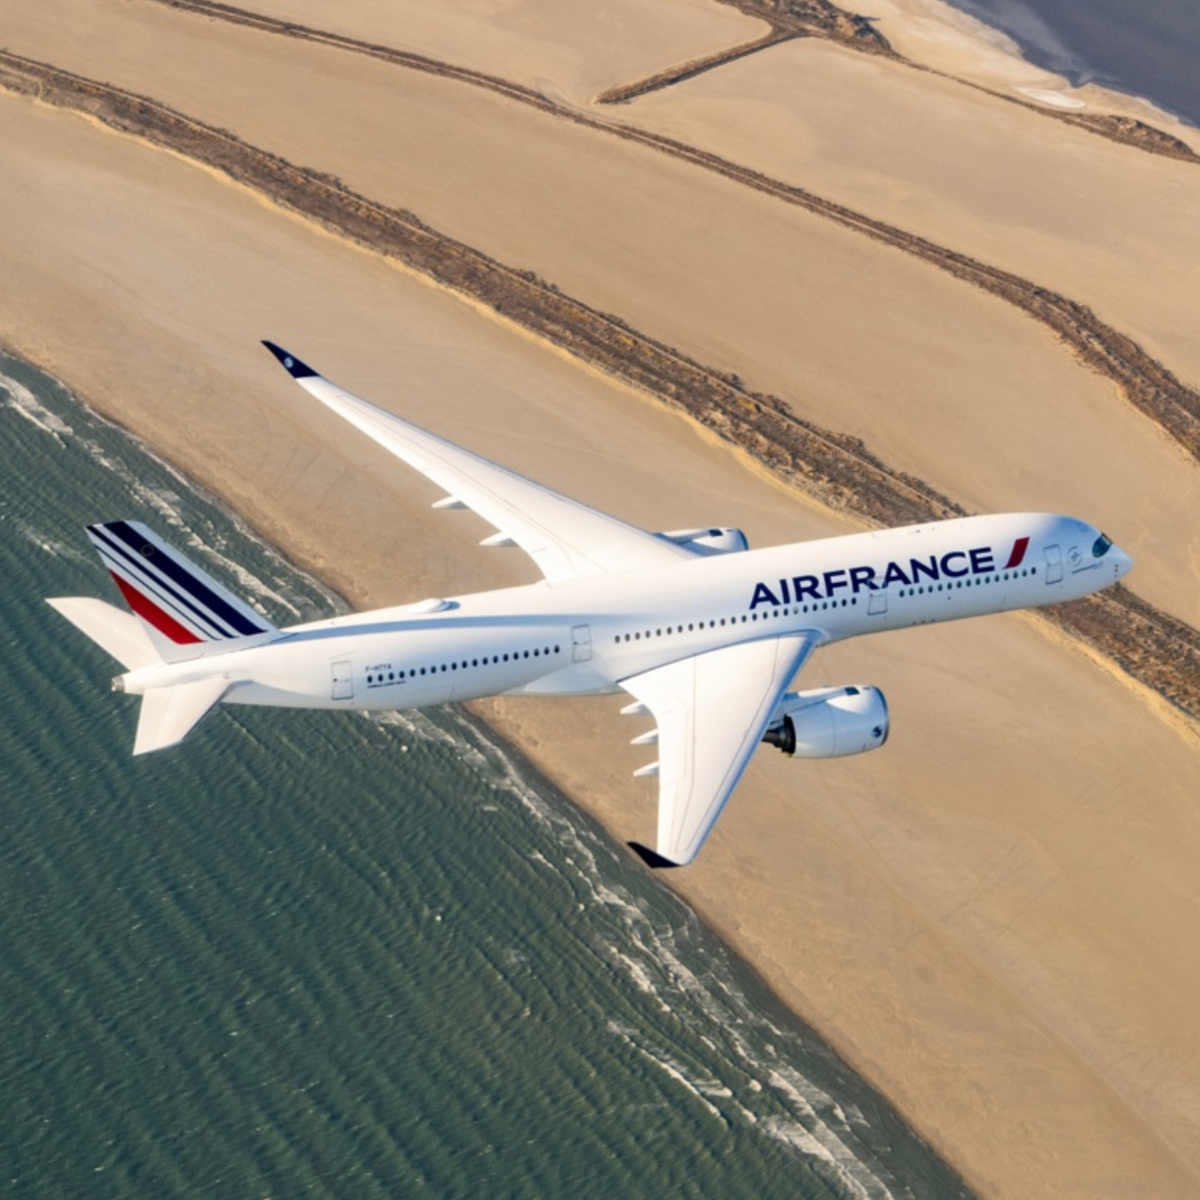 the first model of the latest Air France aircraft appeared in Paris